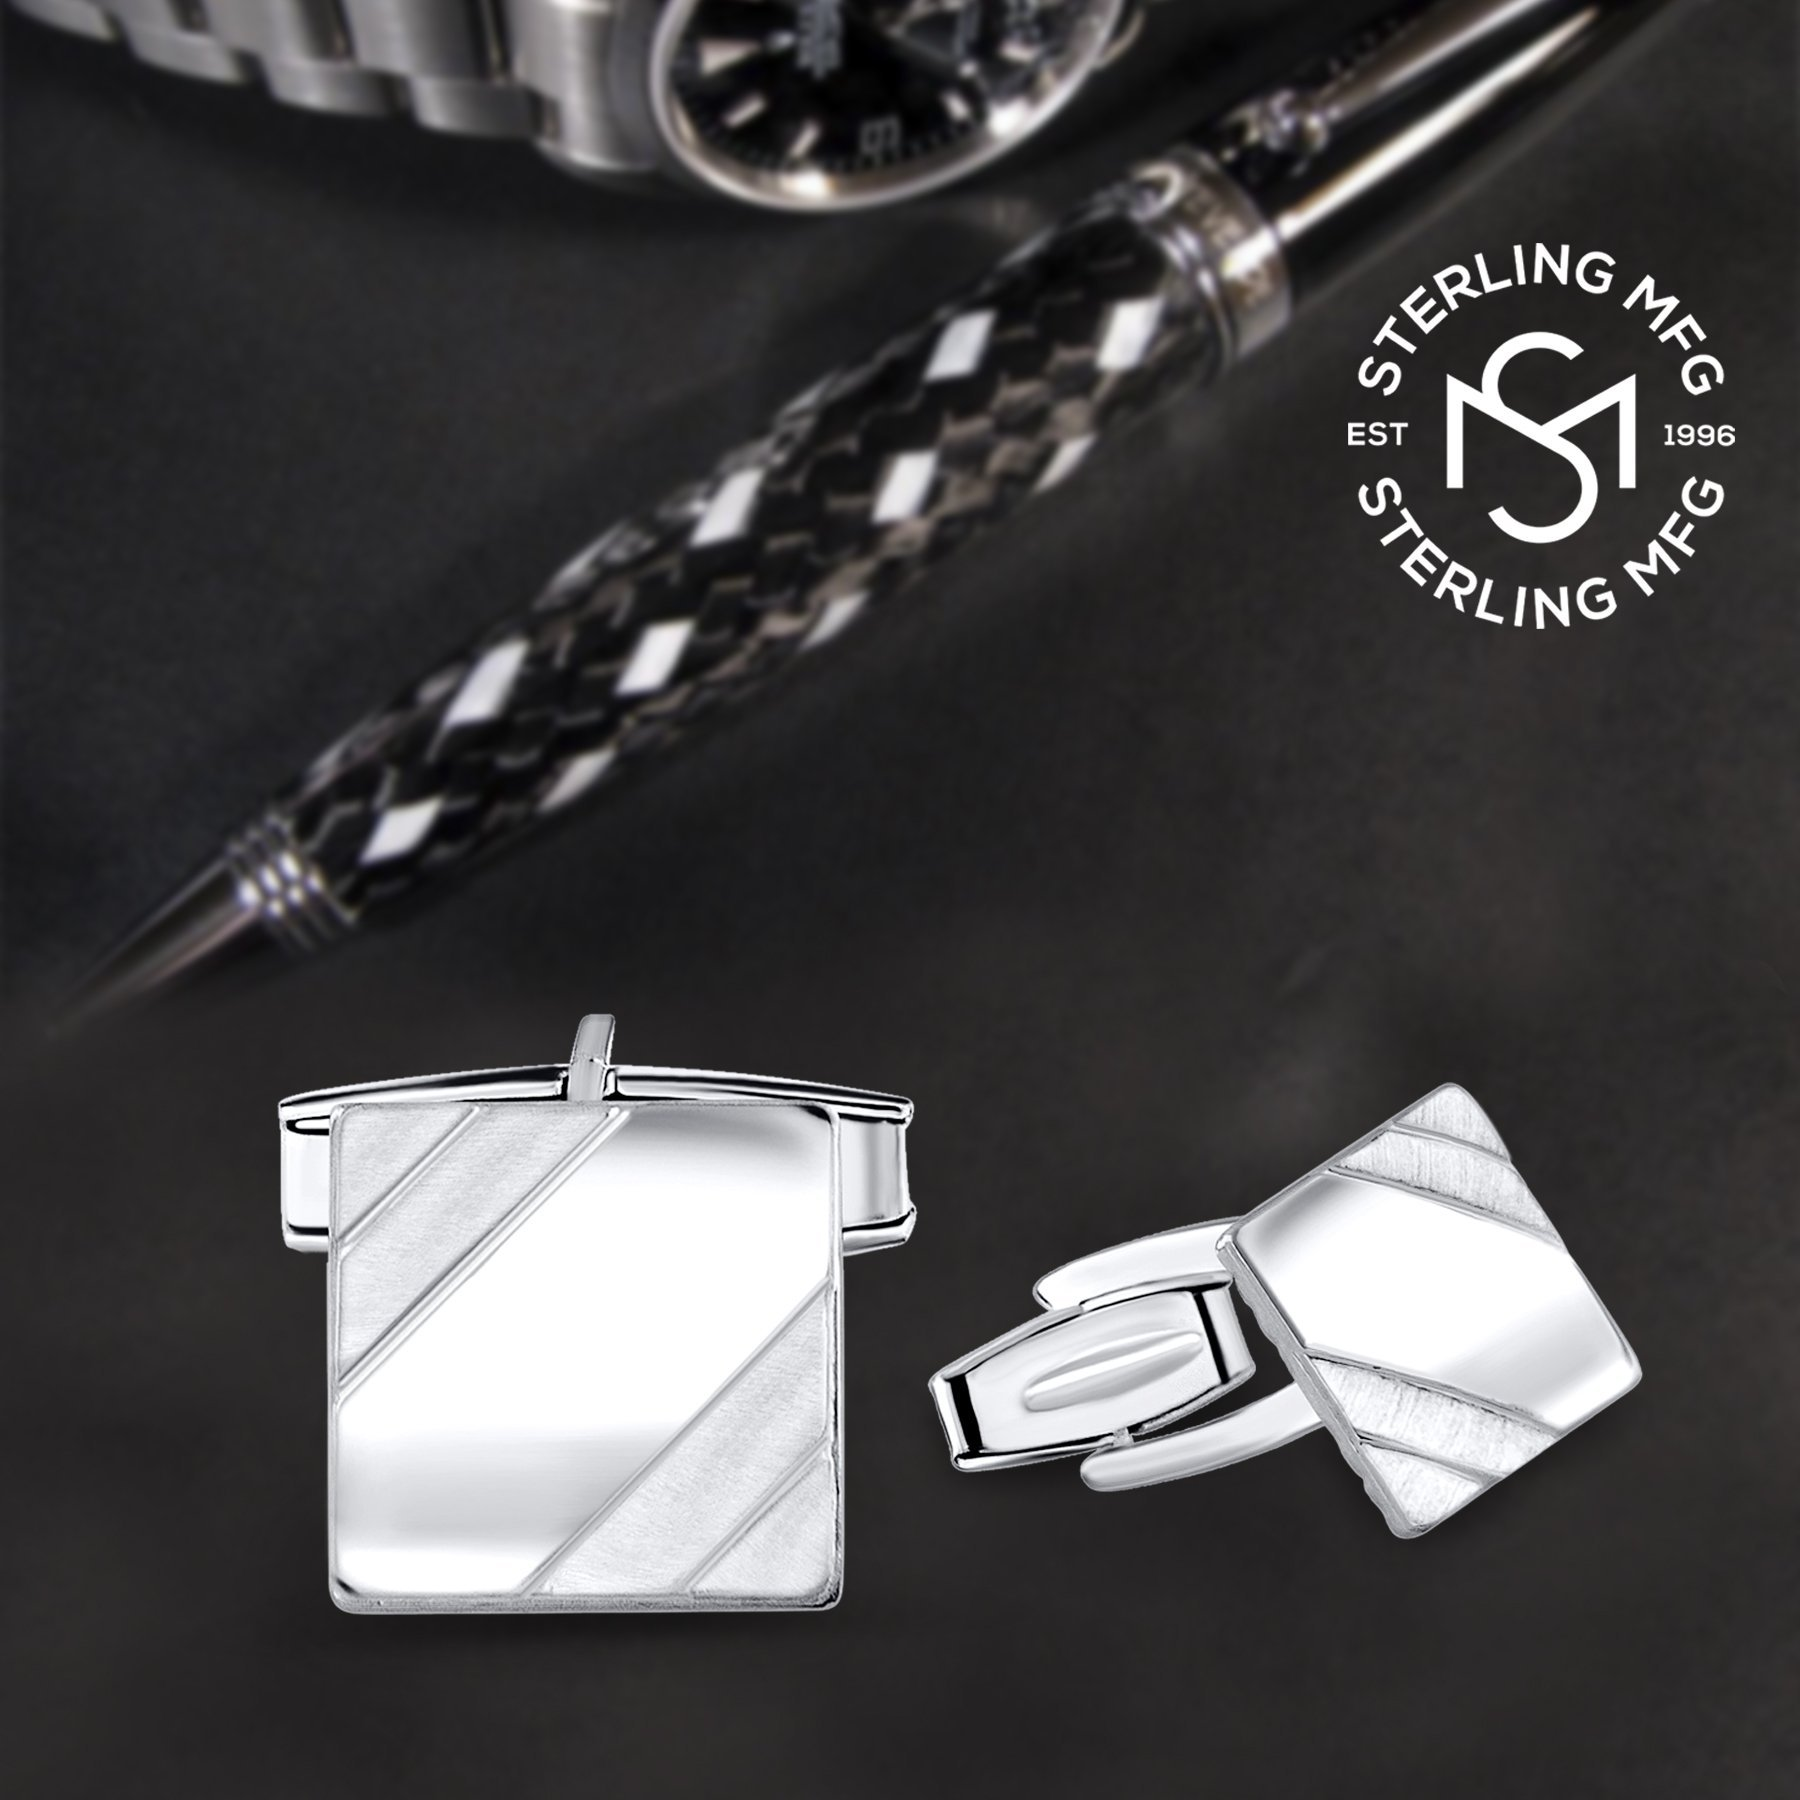 Men's Sterling Silver .925 Square Cufflinks with Satin Finish Accents in Two Corners, Engravable. Made In Italy. 14mm by Sterling Manufacturers (Image #7)